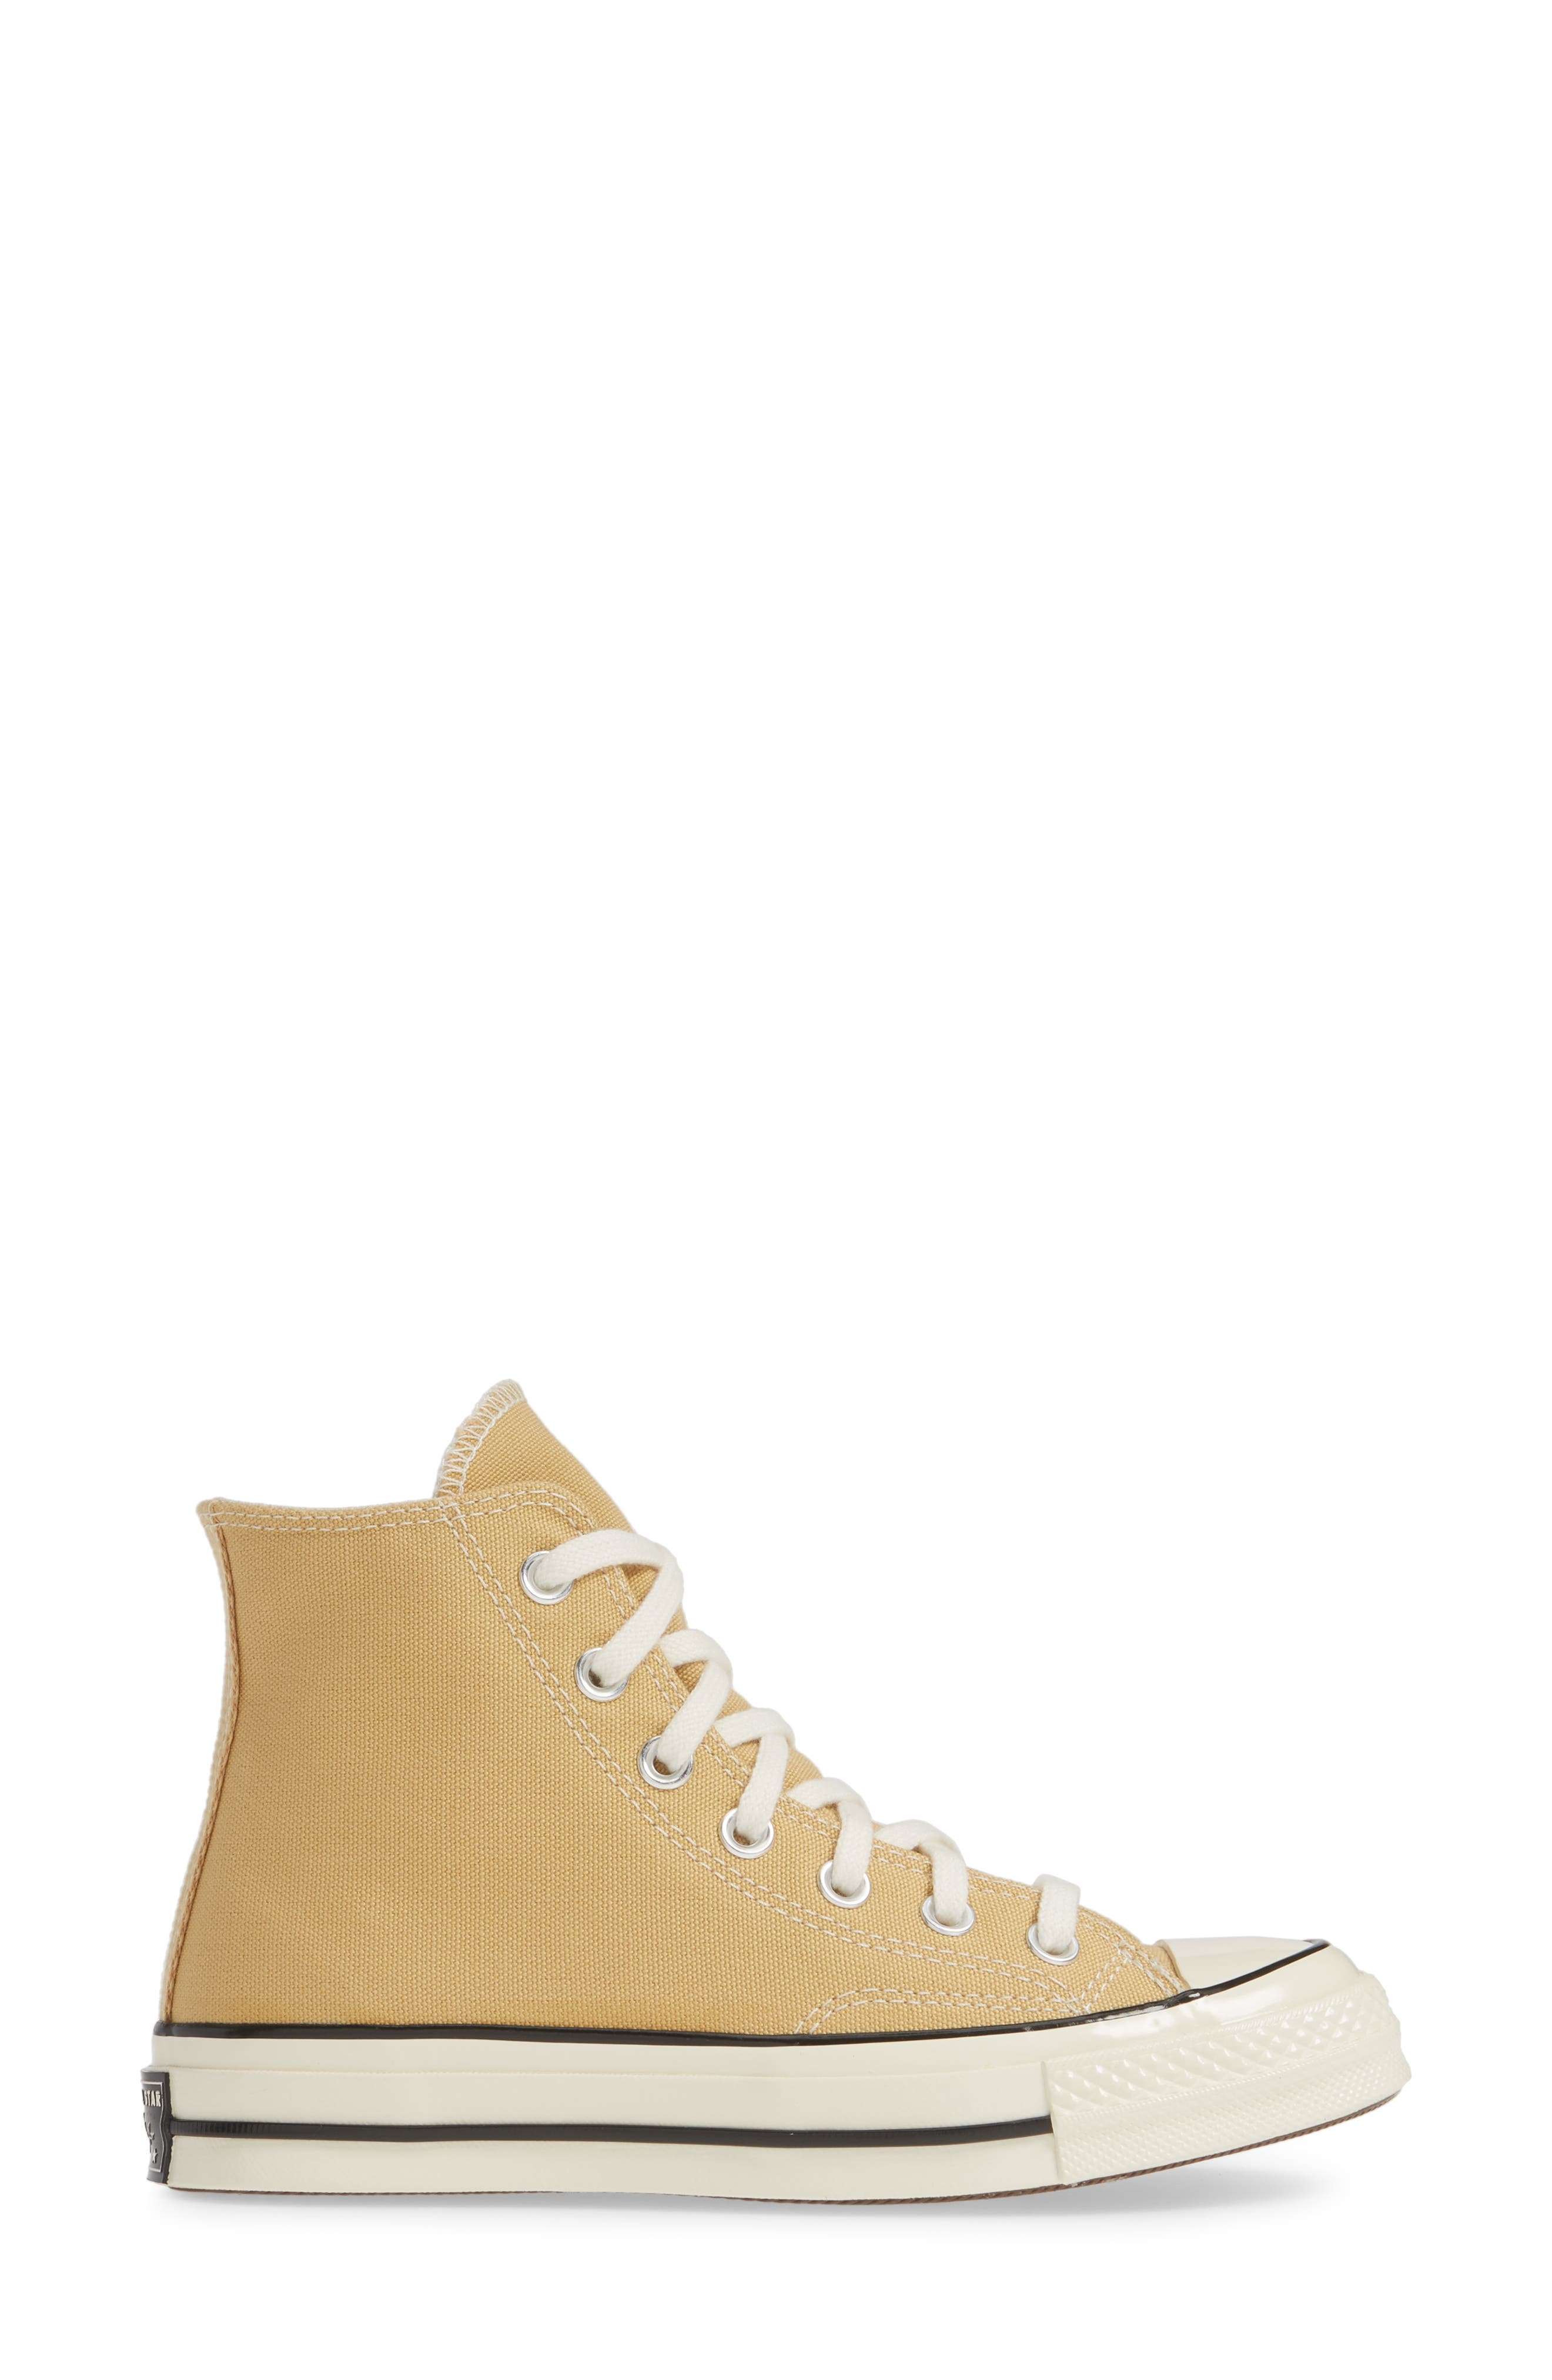 CONVERSE, Chuck Taylor<sup>®</sup> All Star<sup>®</sup> 70 High Top Sneaker, Alternate thumbnail 3, color, CLUB GOLD/ EGRET/ BLACK